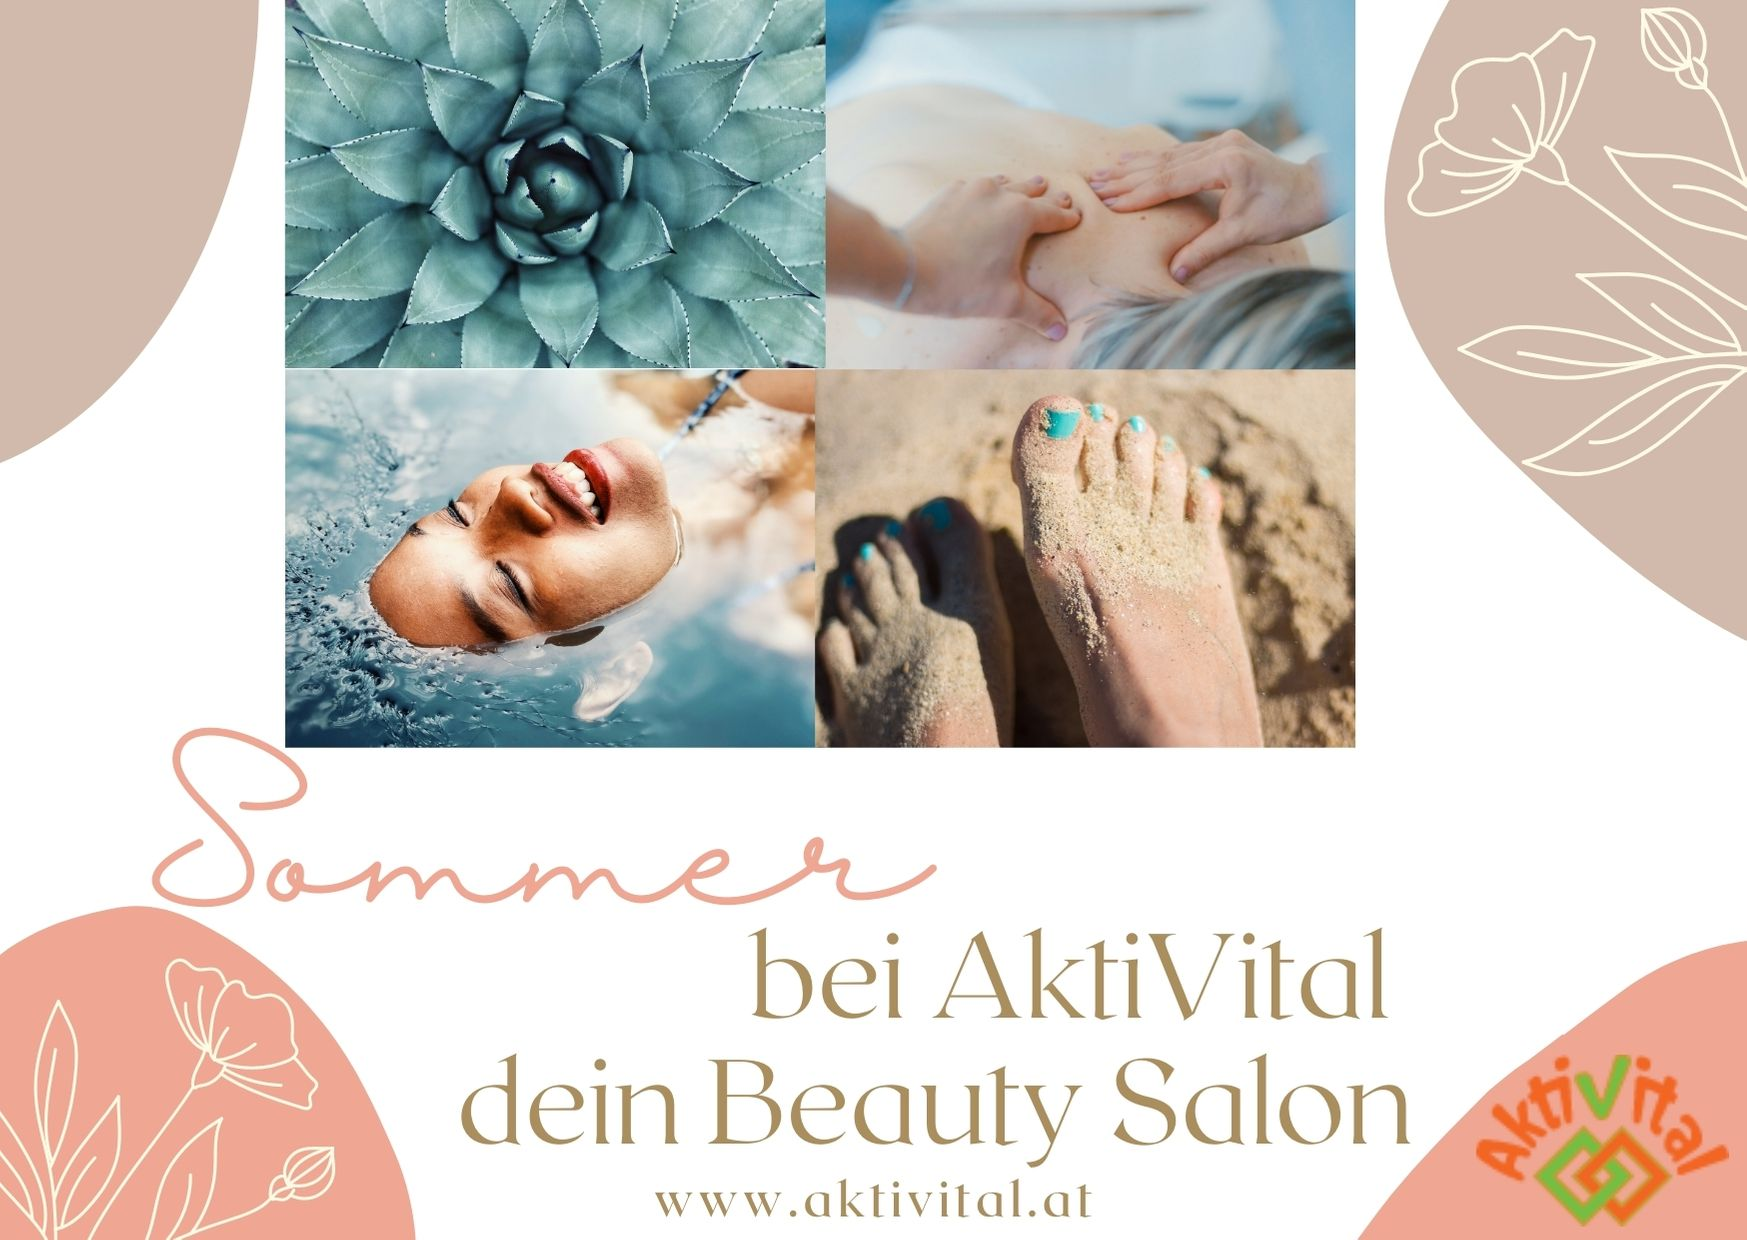 Beauty Salon Wien Sommerbehandlungen